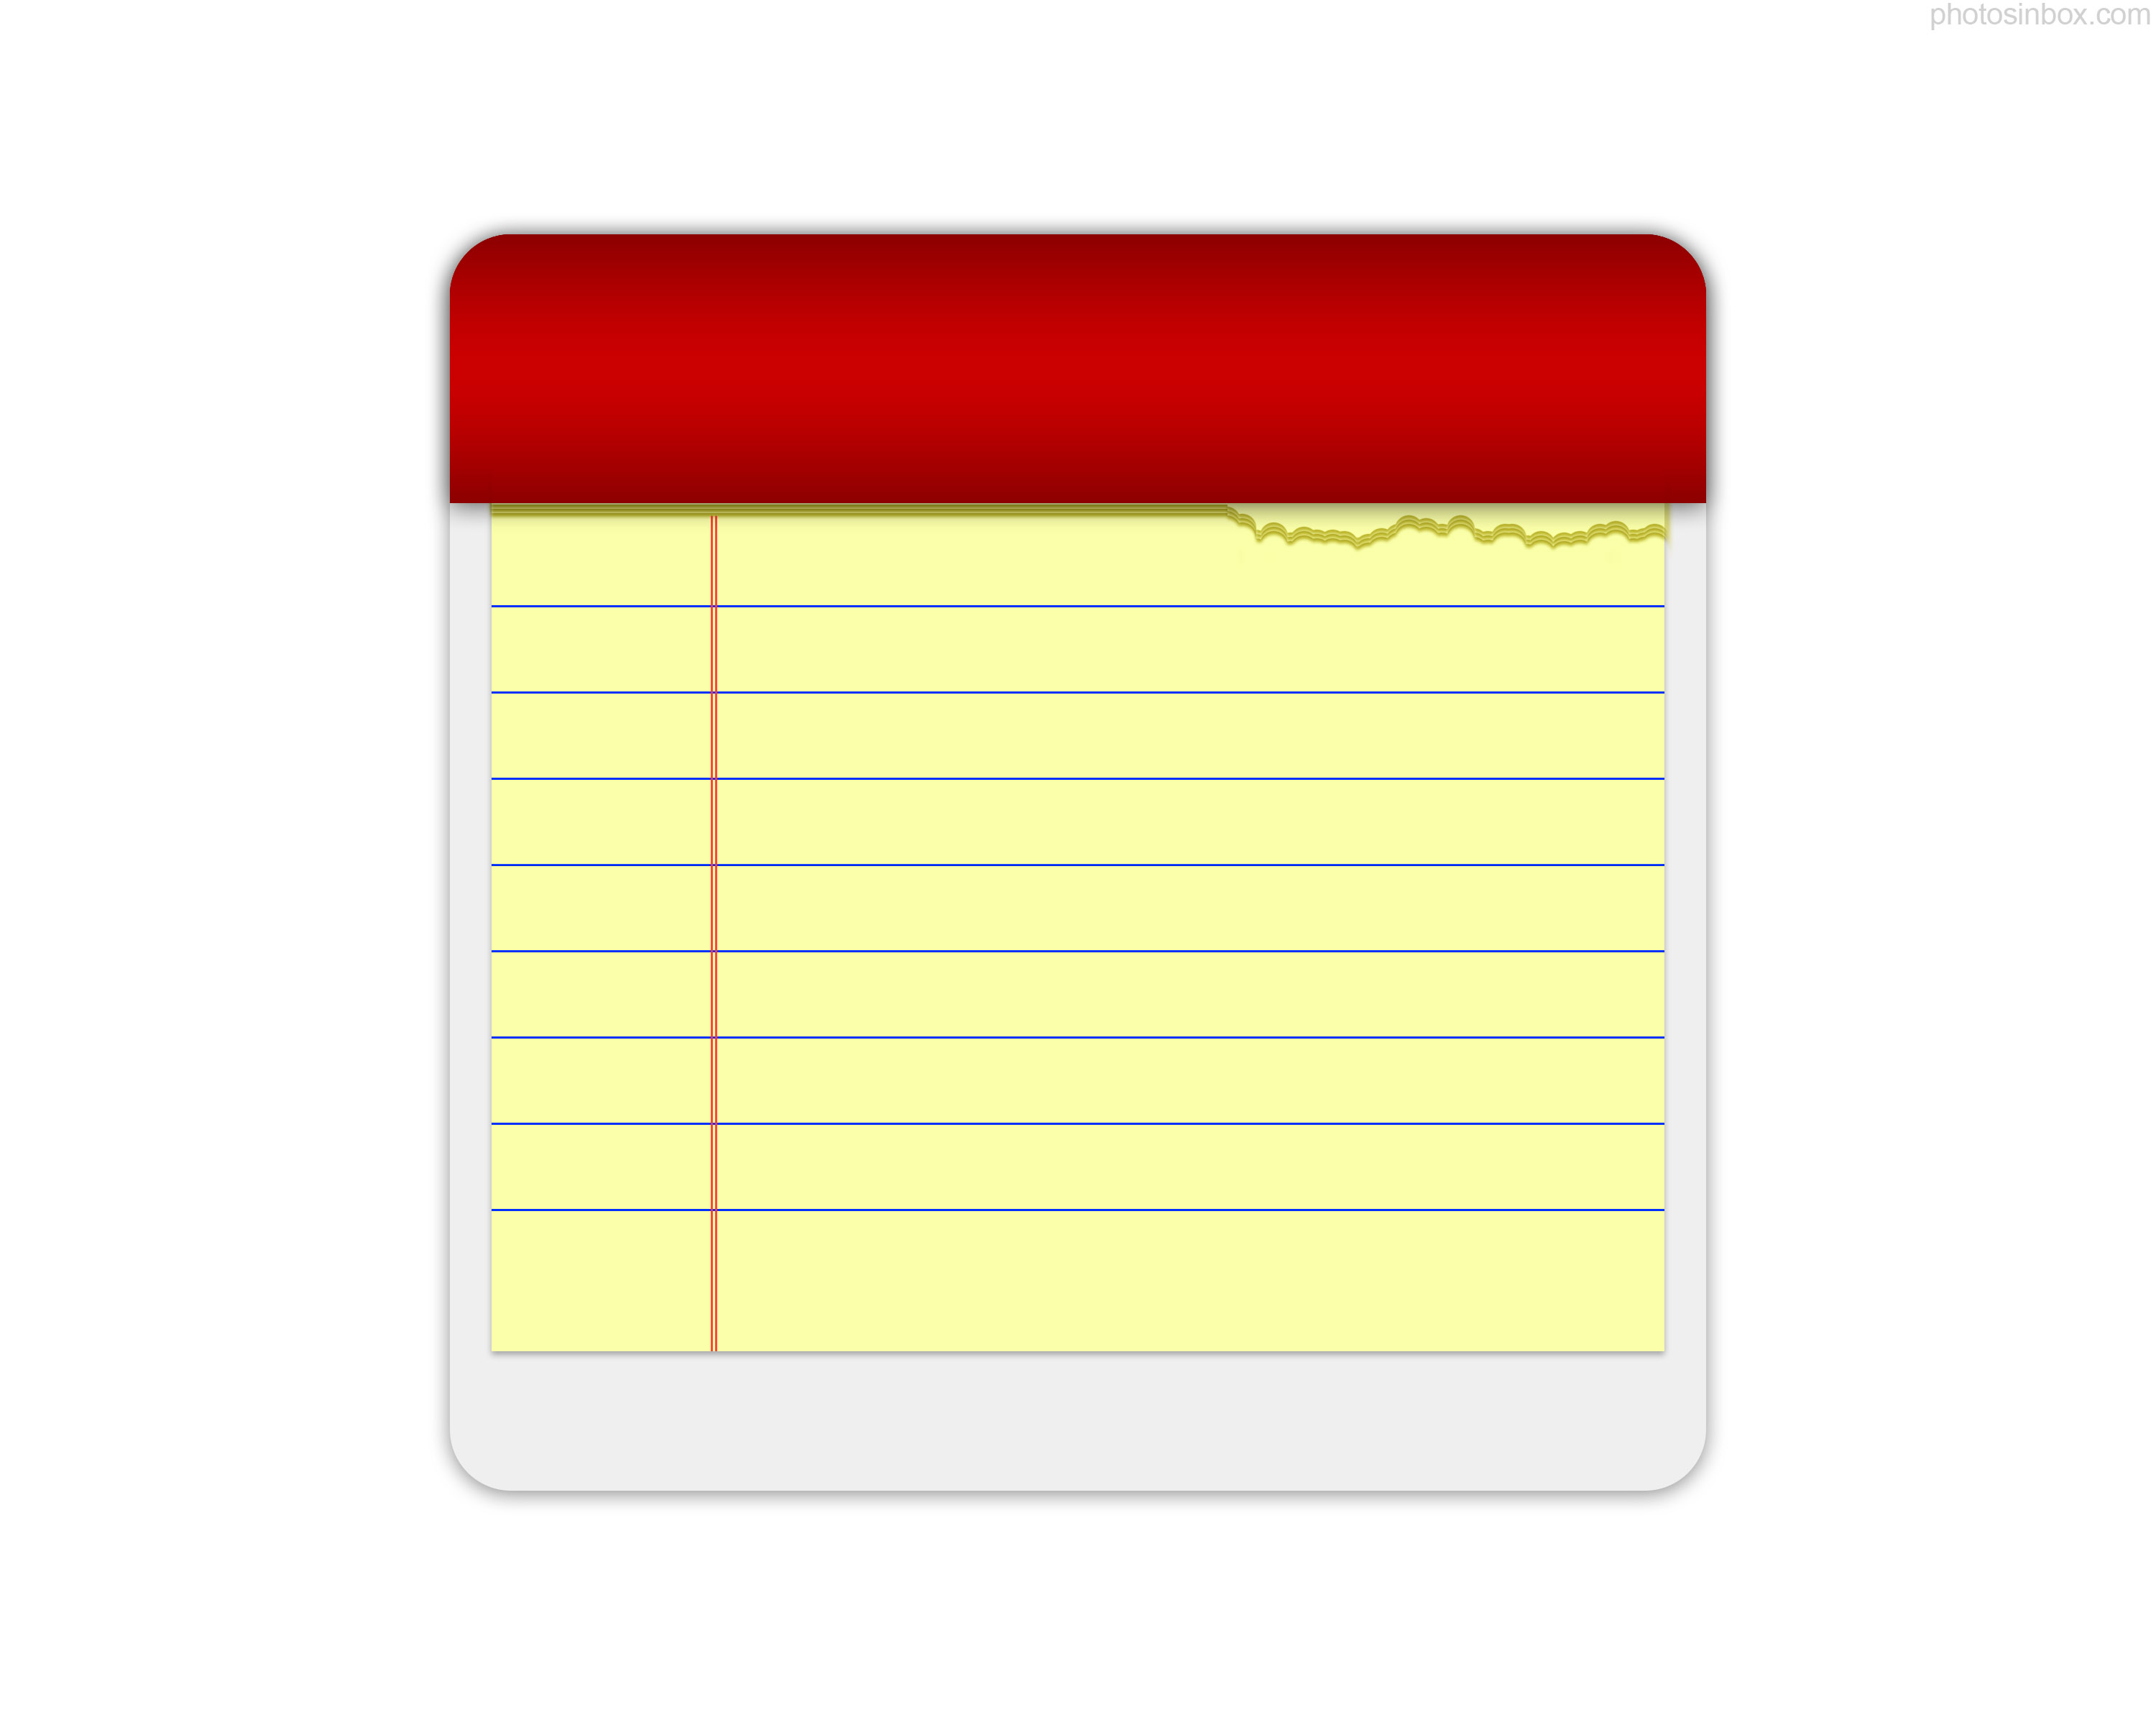 Notebook clipart note paper Yellow Clipart yellow%20notebook%20paper%20clipart Clipart Free